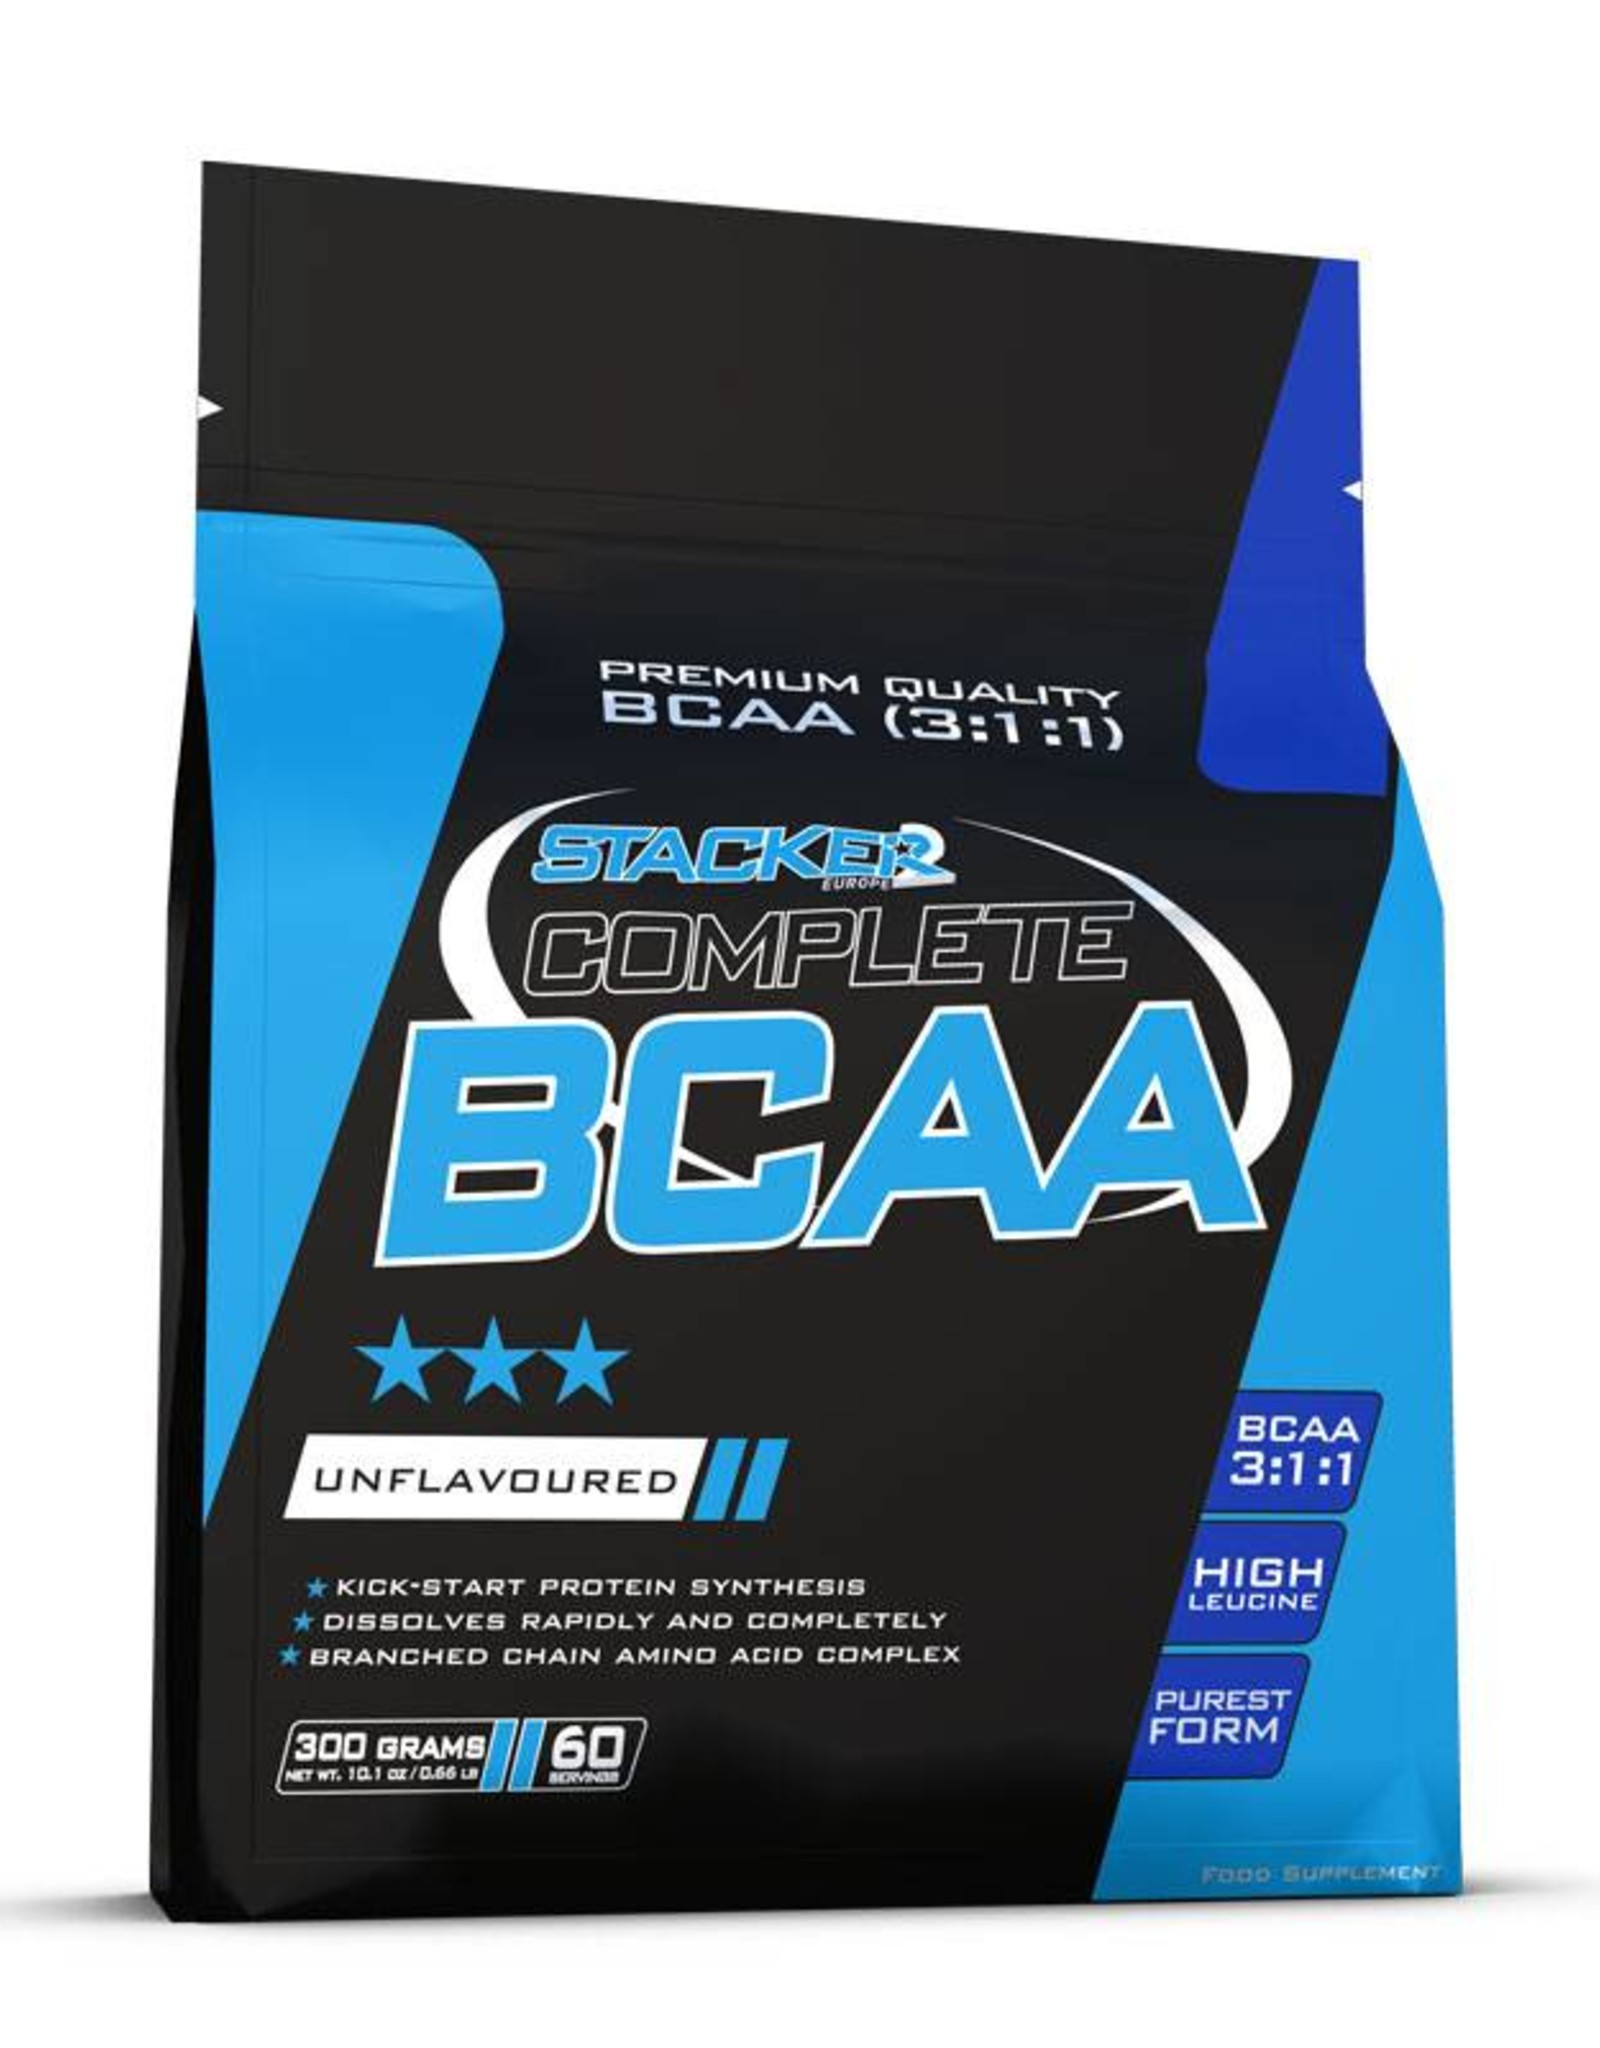 Stacker2  Complete bcaa 3:1:1 (unflavoured - 300 gram)